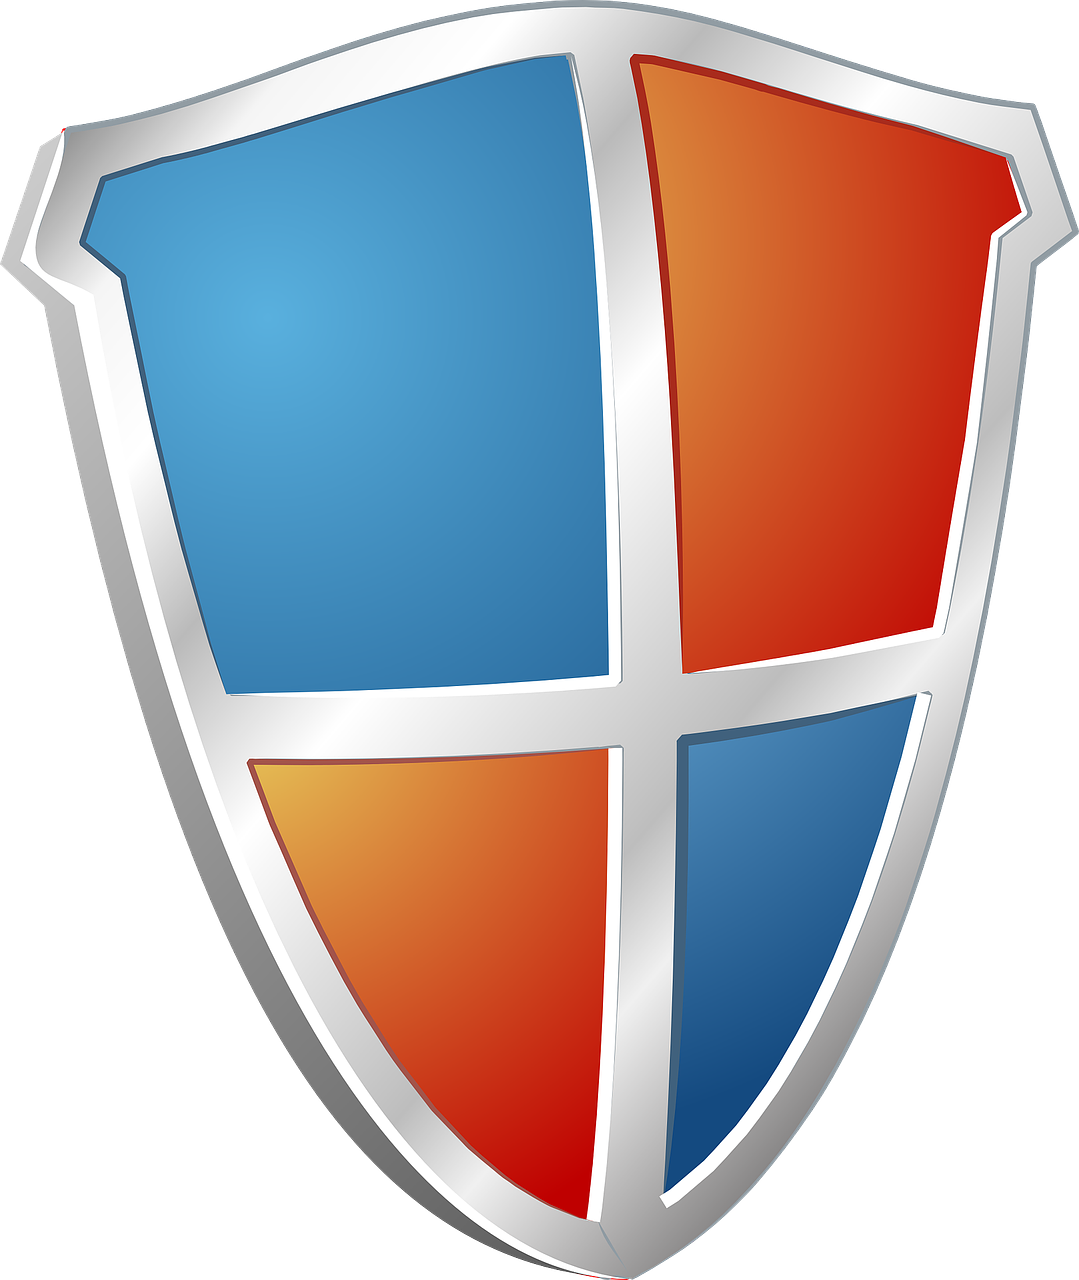 Image of shield